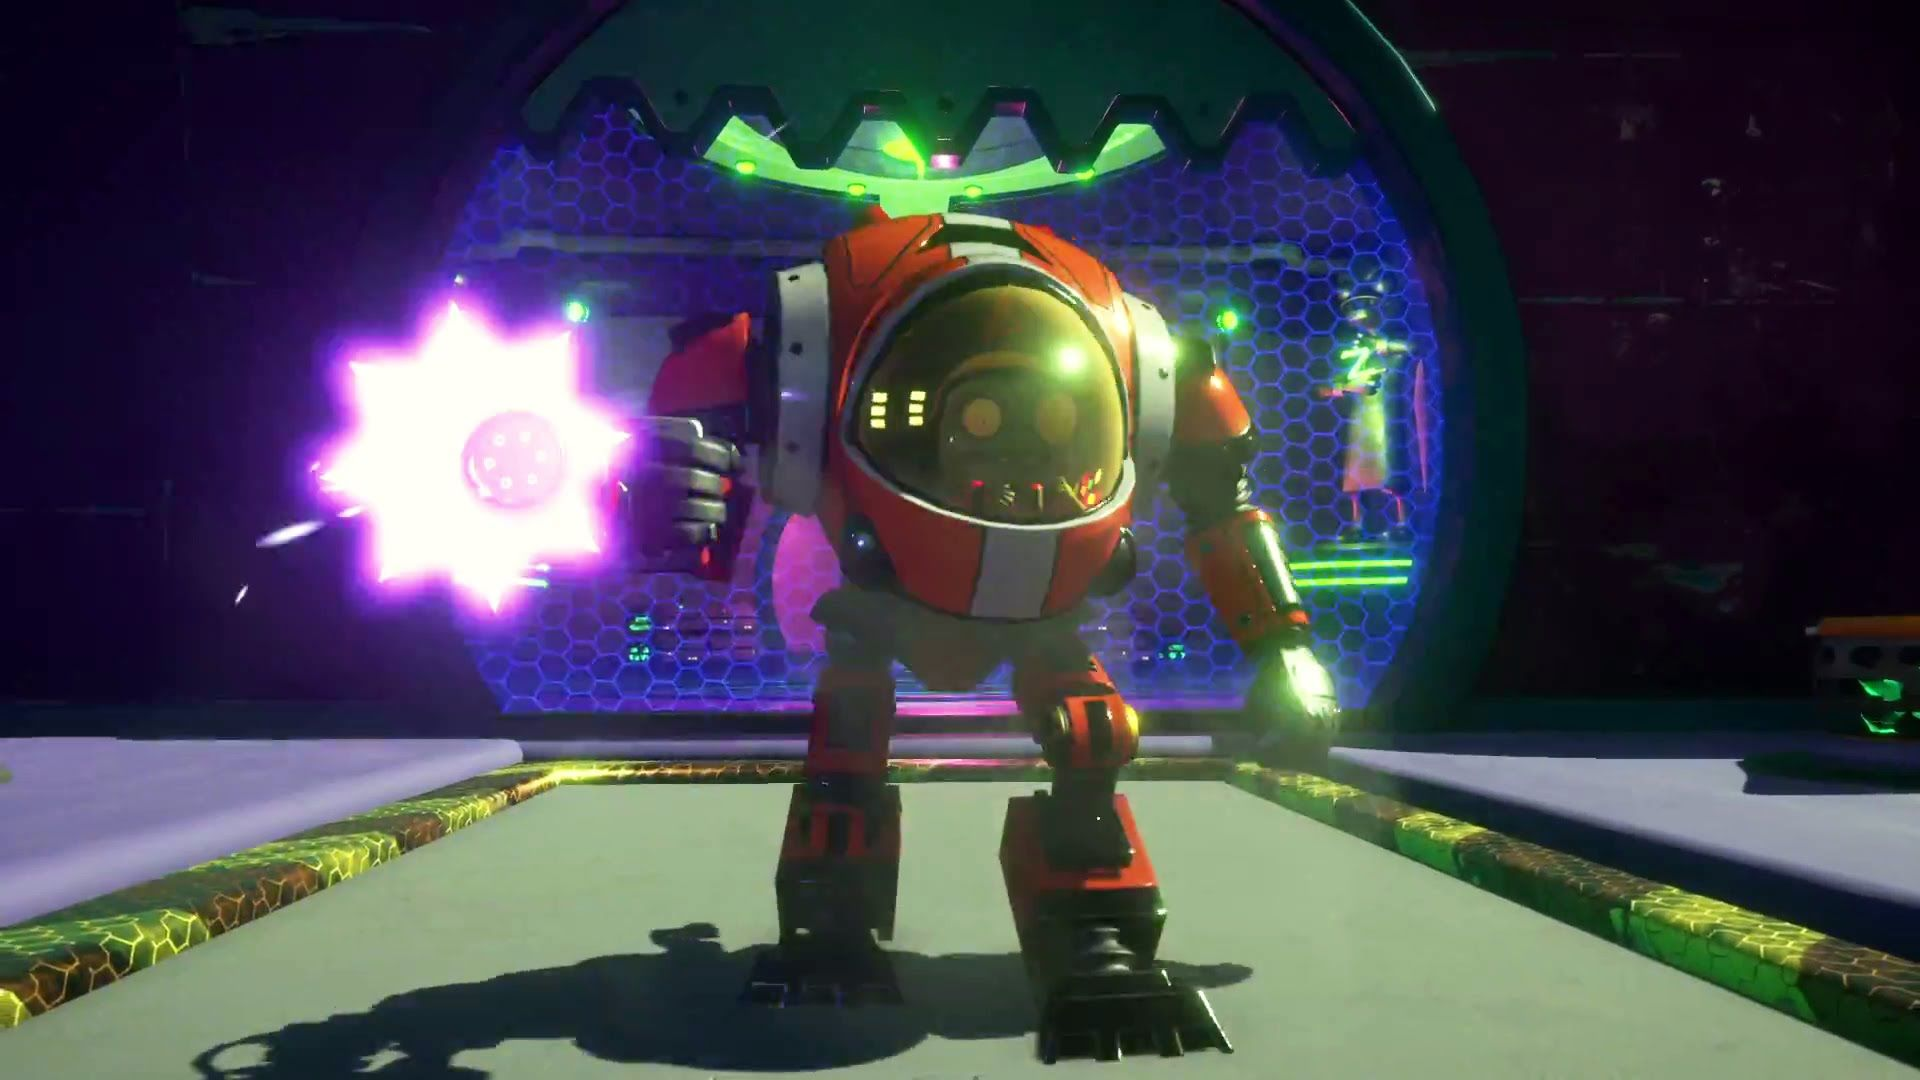 Plants Vs Zombies Garden Warfare 2 Moon Base Z Gameplay Trailer